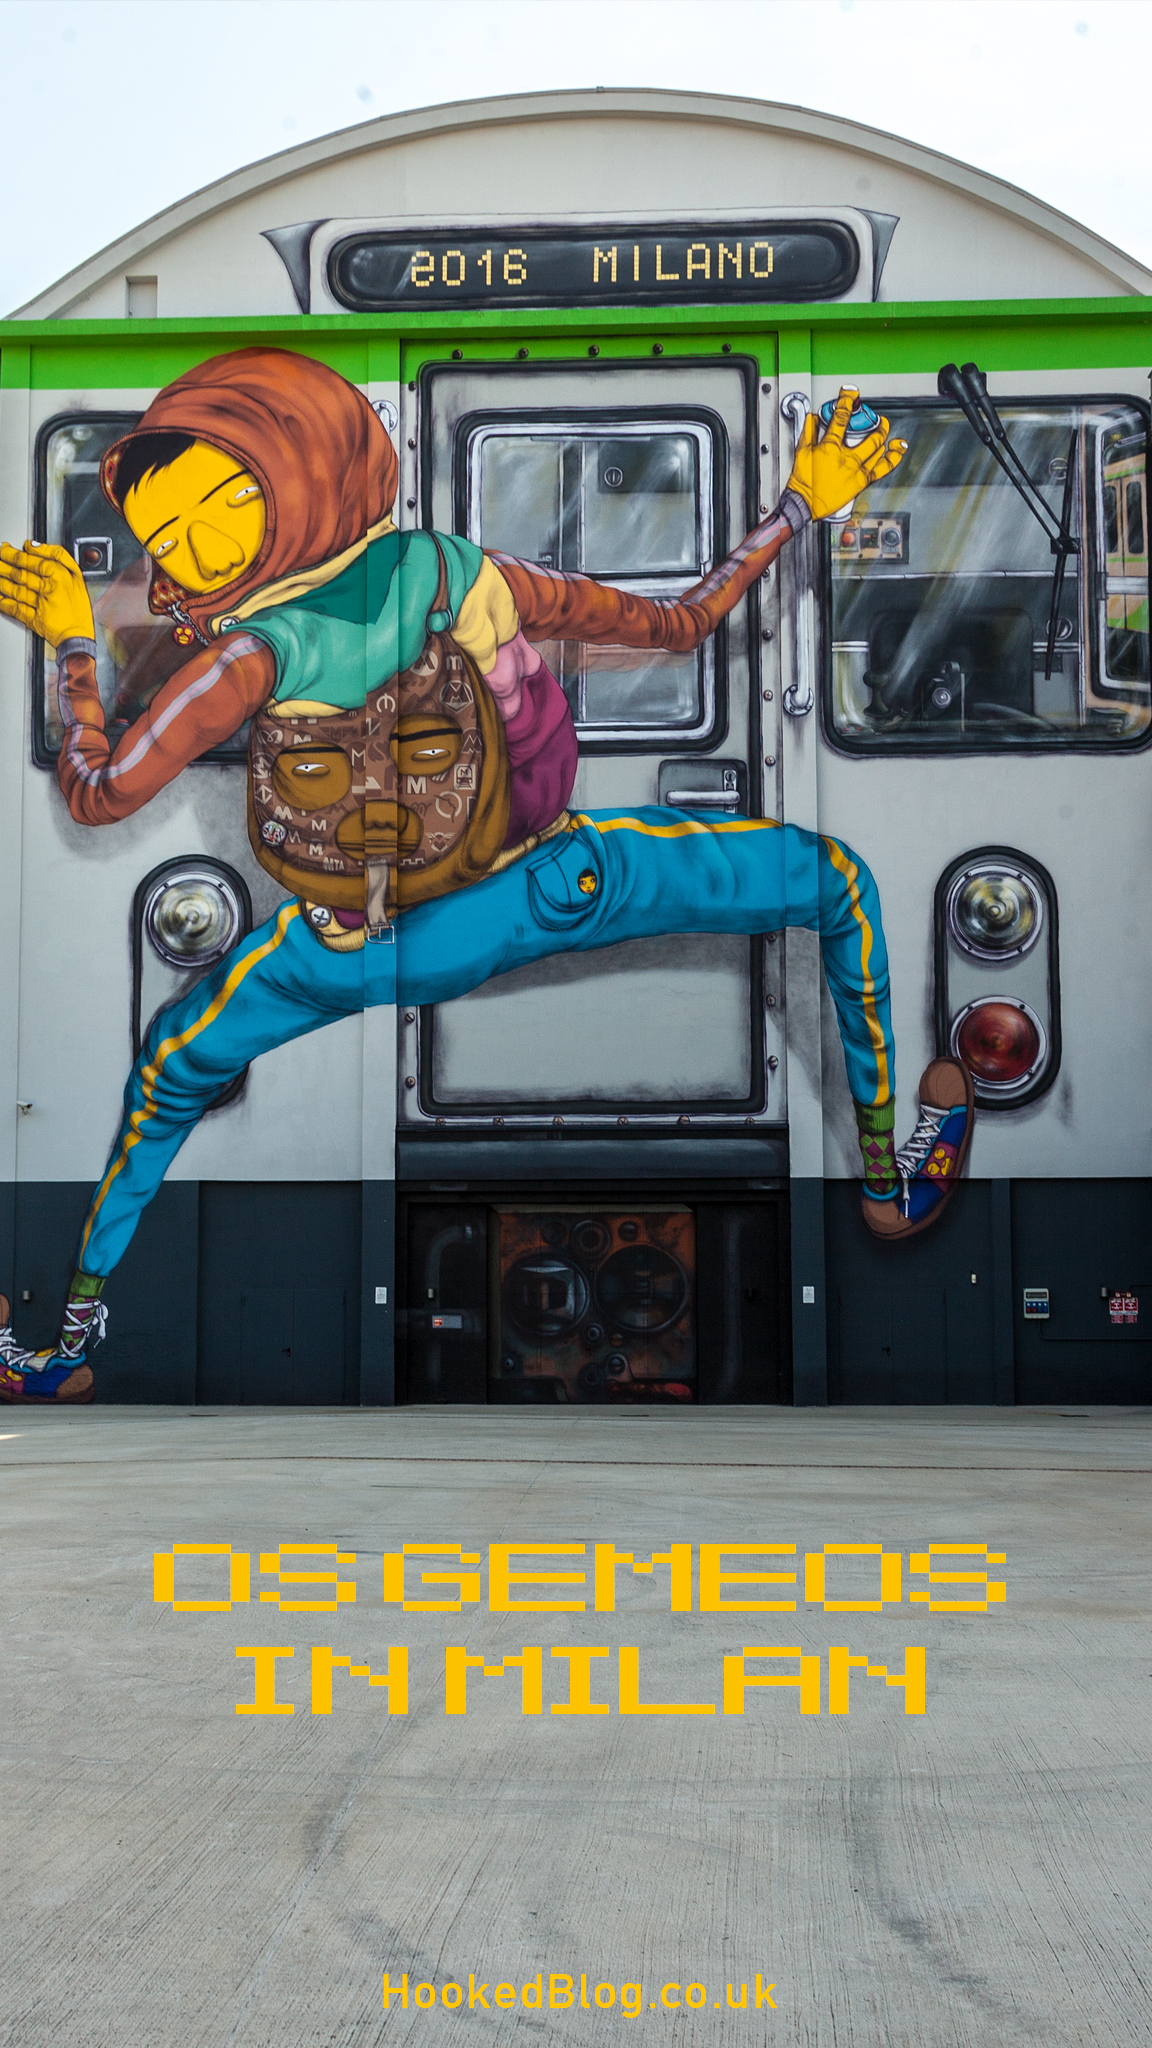 Large scale Milan Street Art mural by South American street art duo Os Gemeos. #streetart #graffiti #mural